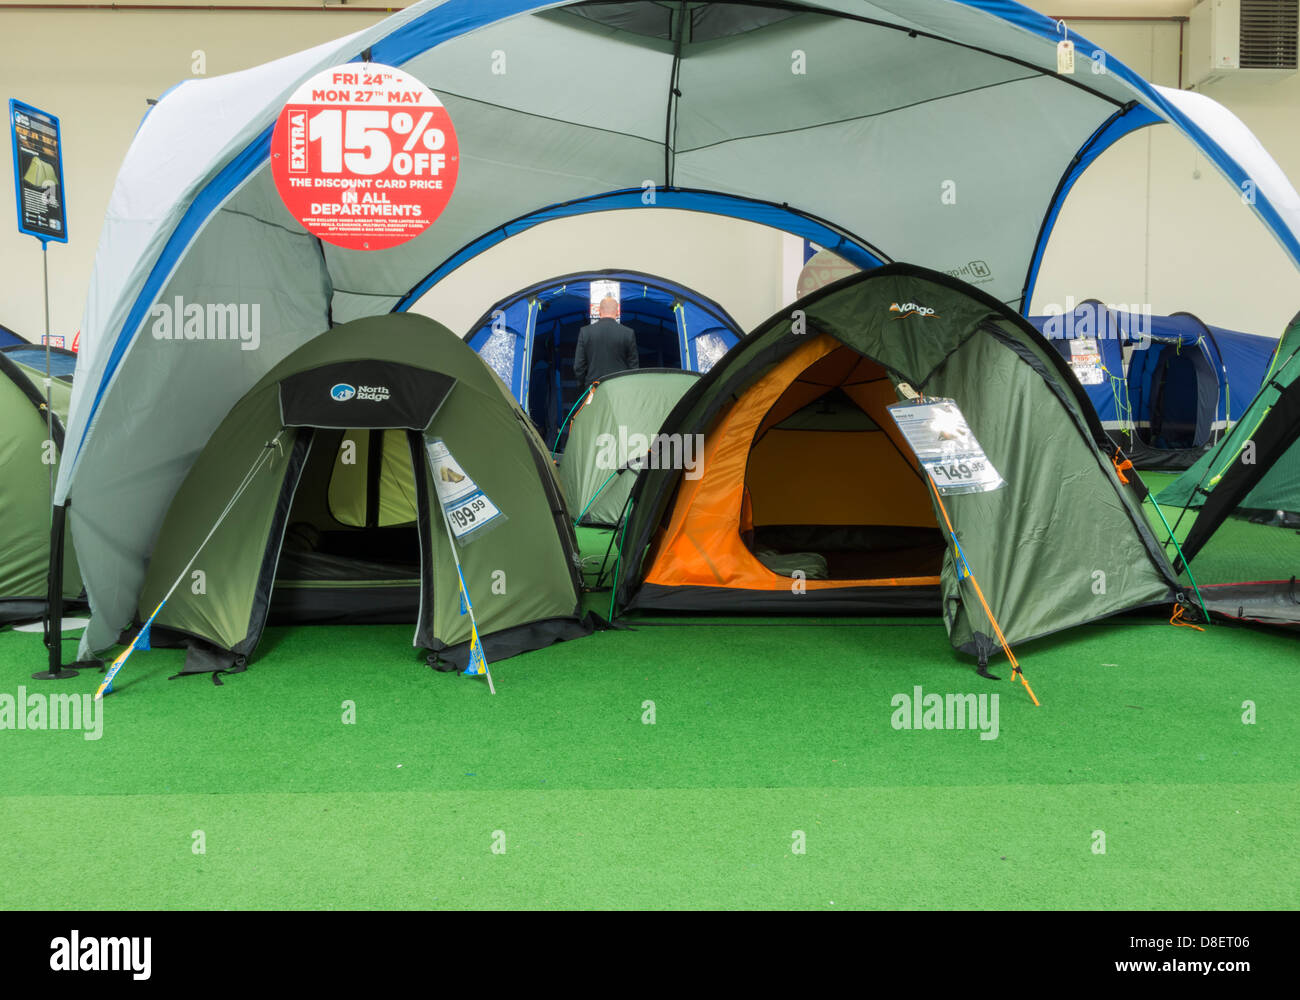 Tent display at Go Outdoors store England UK & Tent display at Go Outdoors store England UK Stock Photo ...